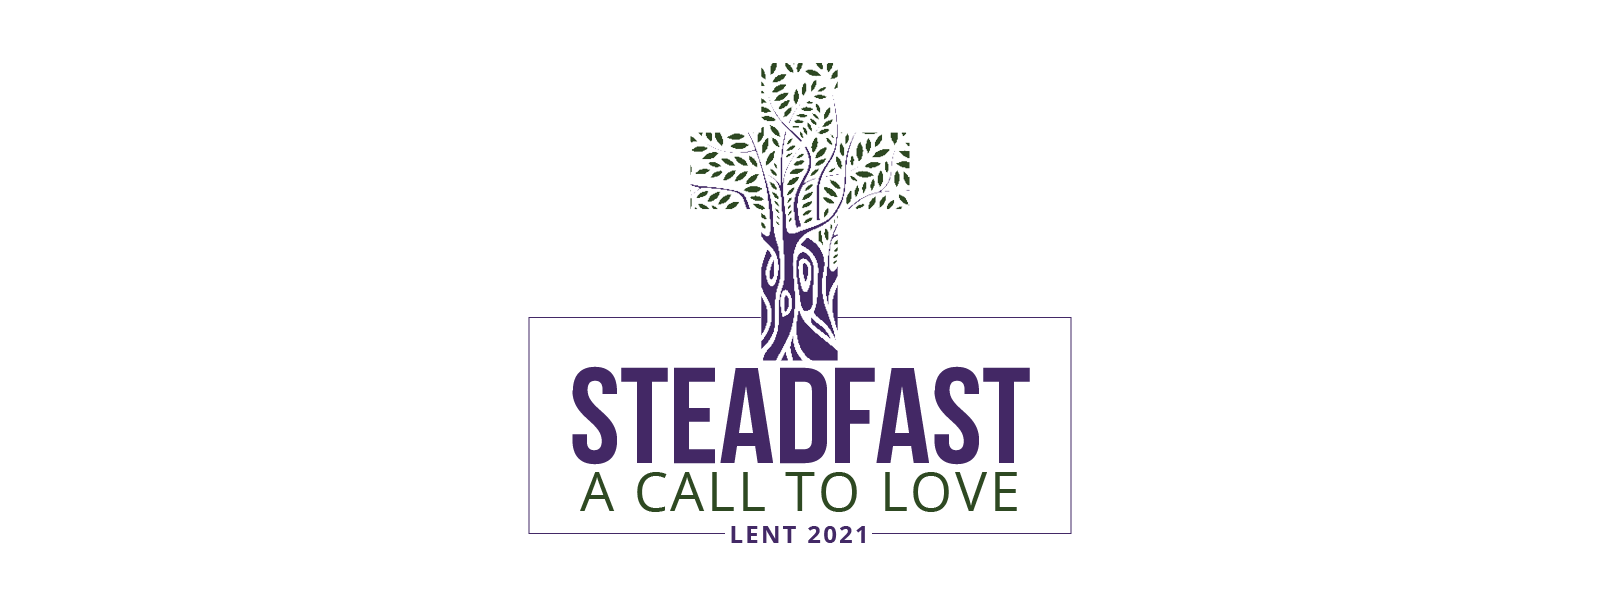 Steadfast: Lent 2021